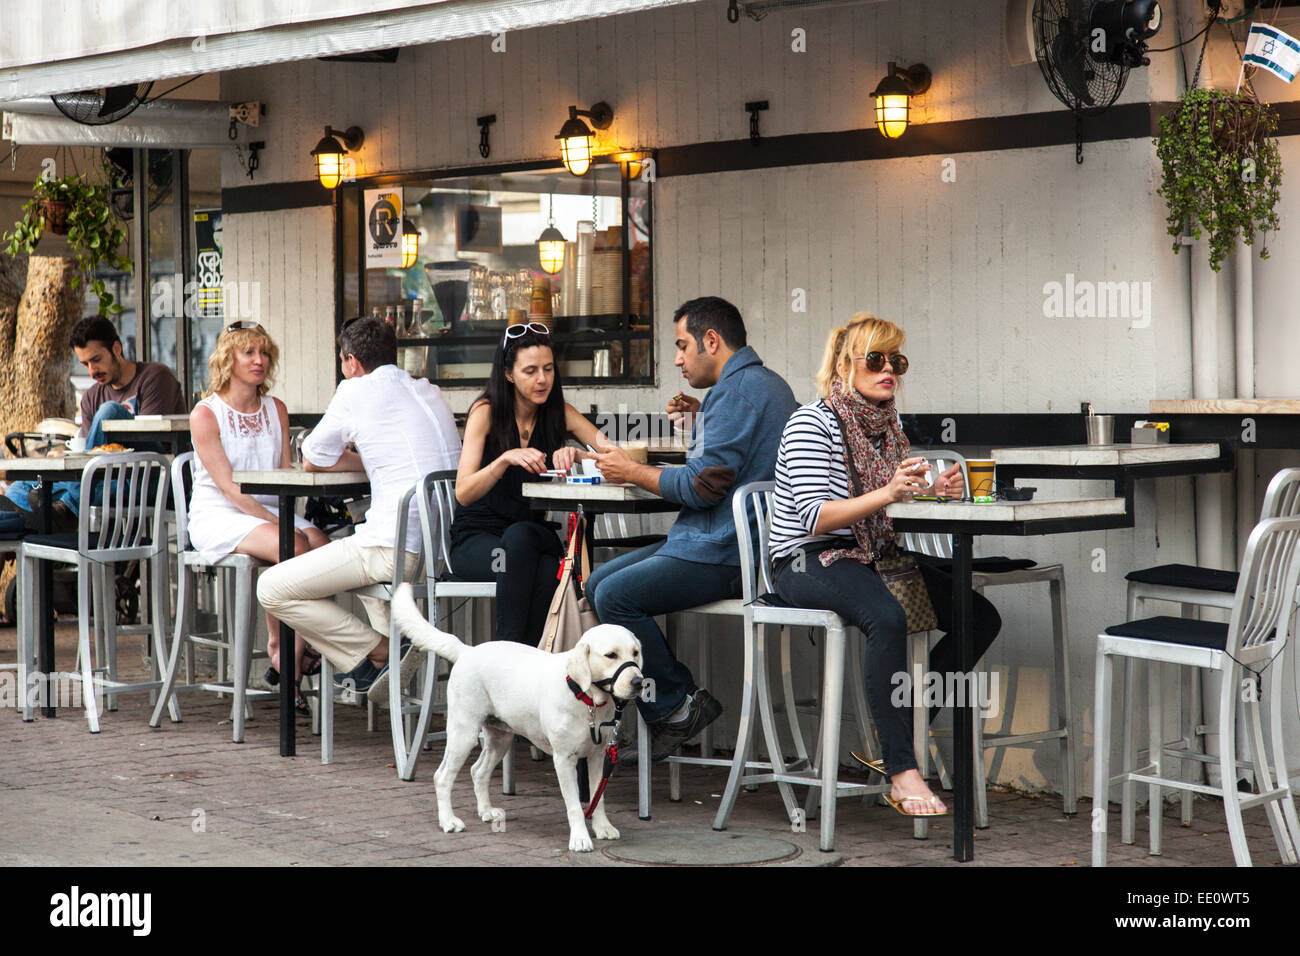 People sitting outside a cafe along Rothschild Boulevard in Tel Aviv, Israel - Stock Image